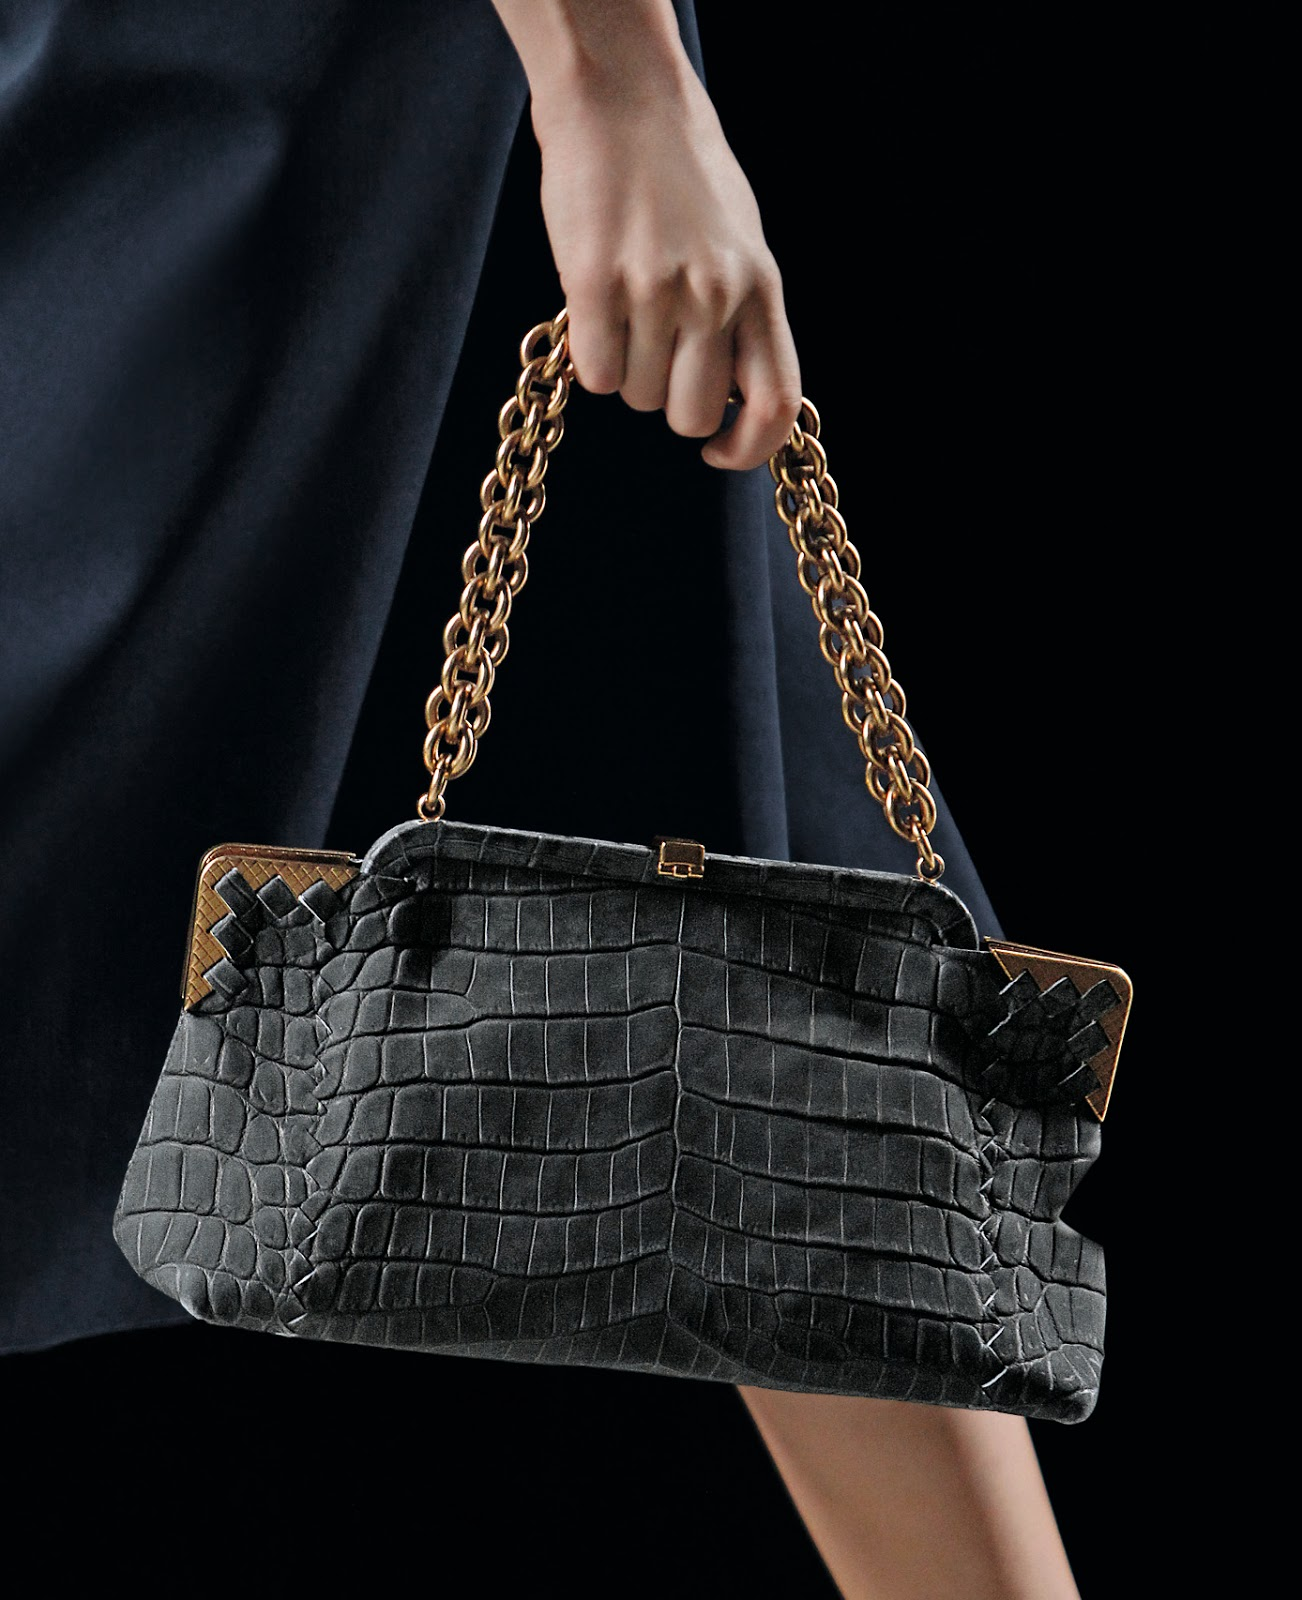 My Favourite Bags from Bottega Veneta's Fall/Winter 2013-14 Collection!